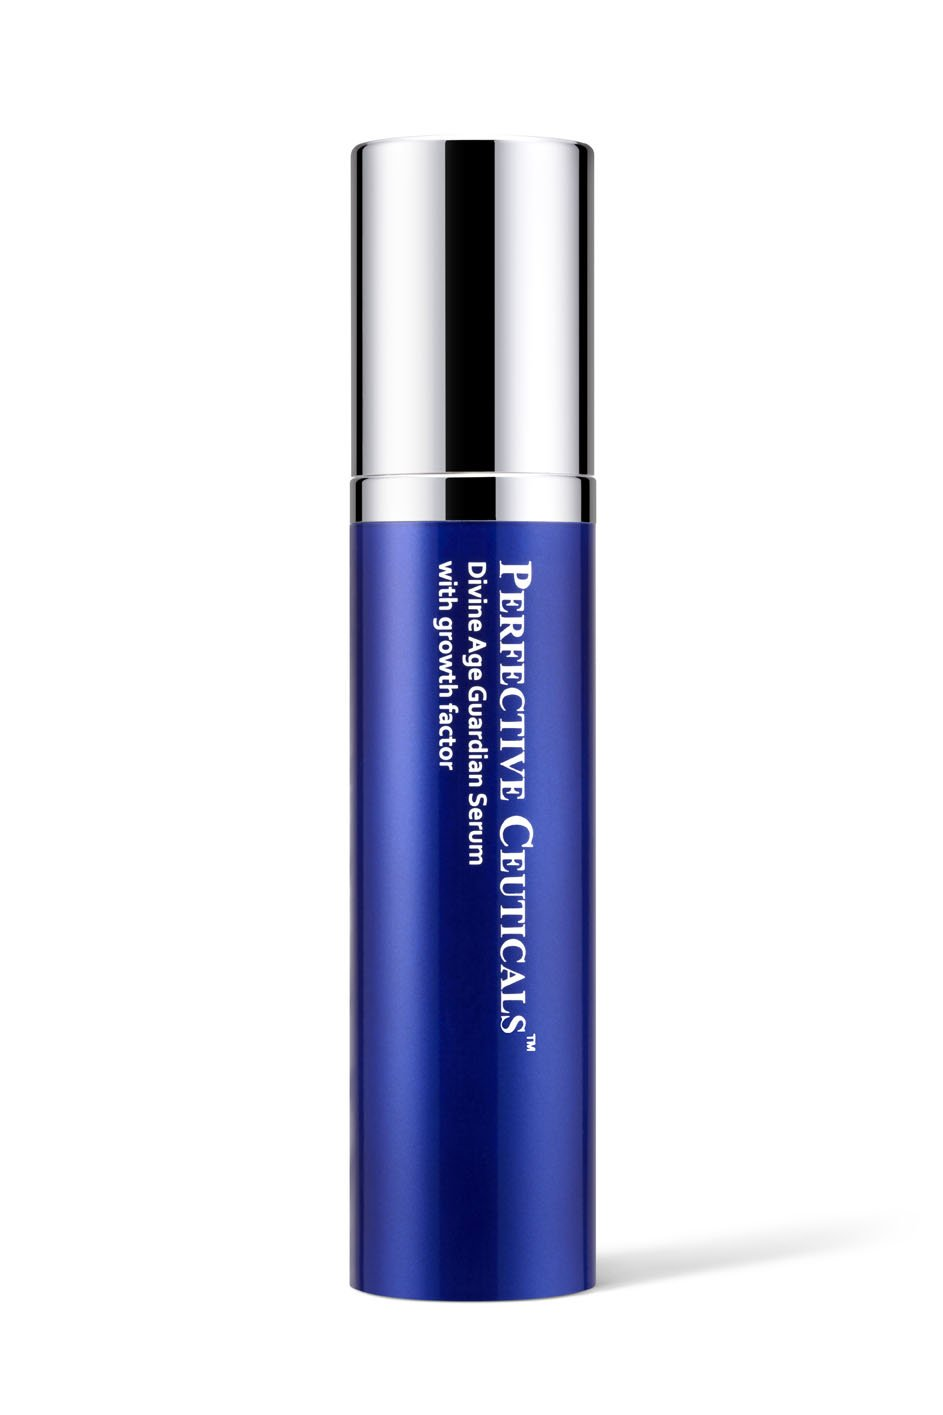 Anti-aging Serum - Perfective Ceuticals Divine Age Guardian Serum with Growth Factor